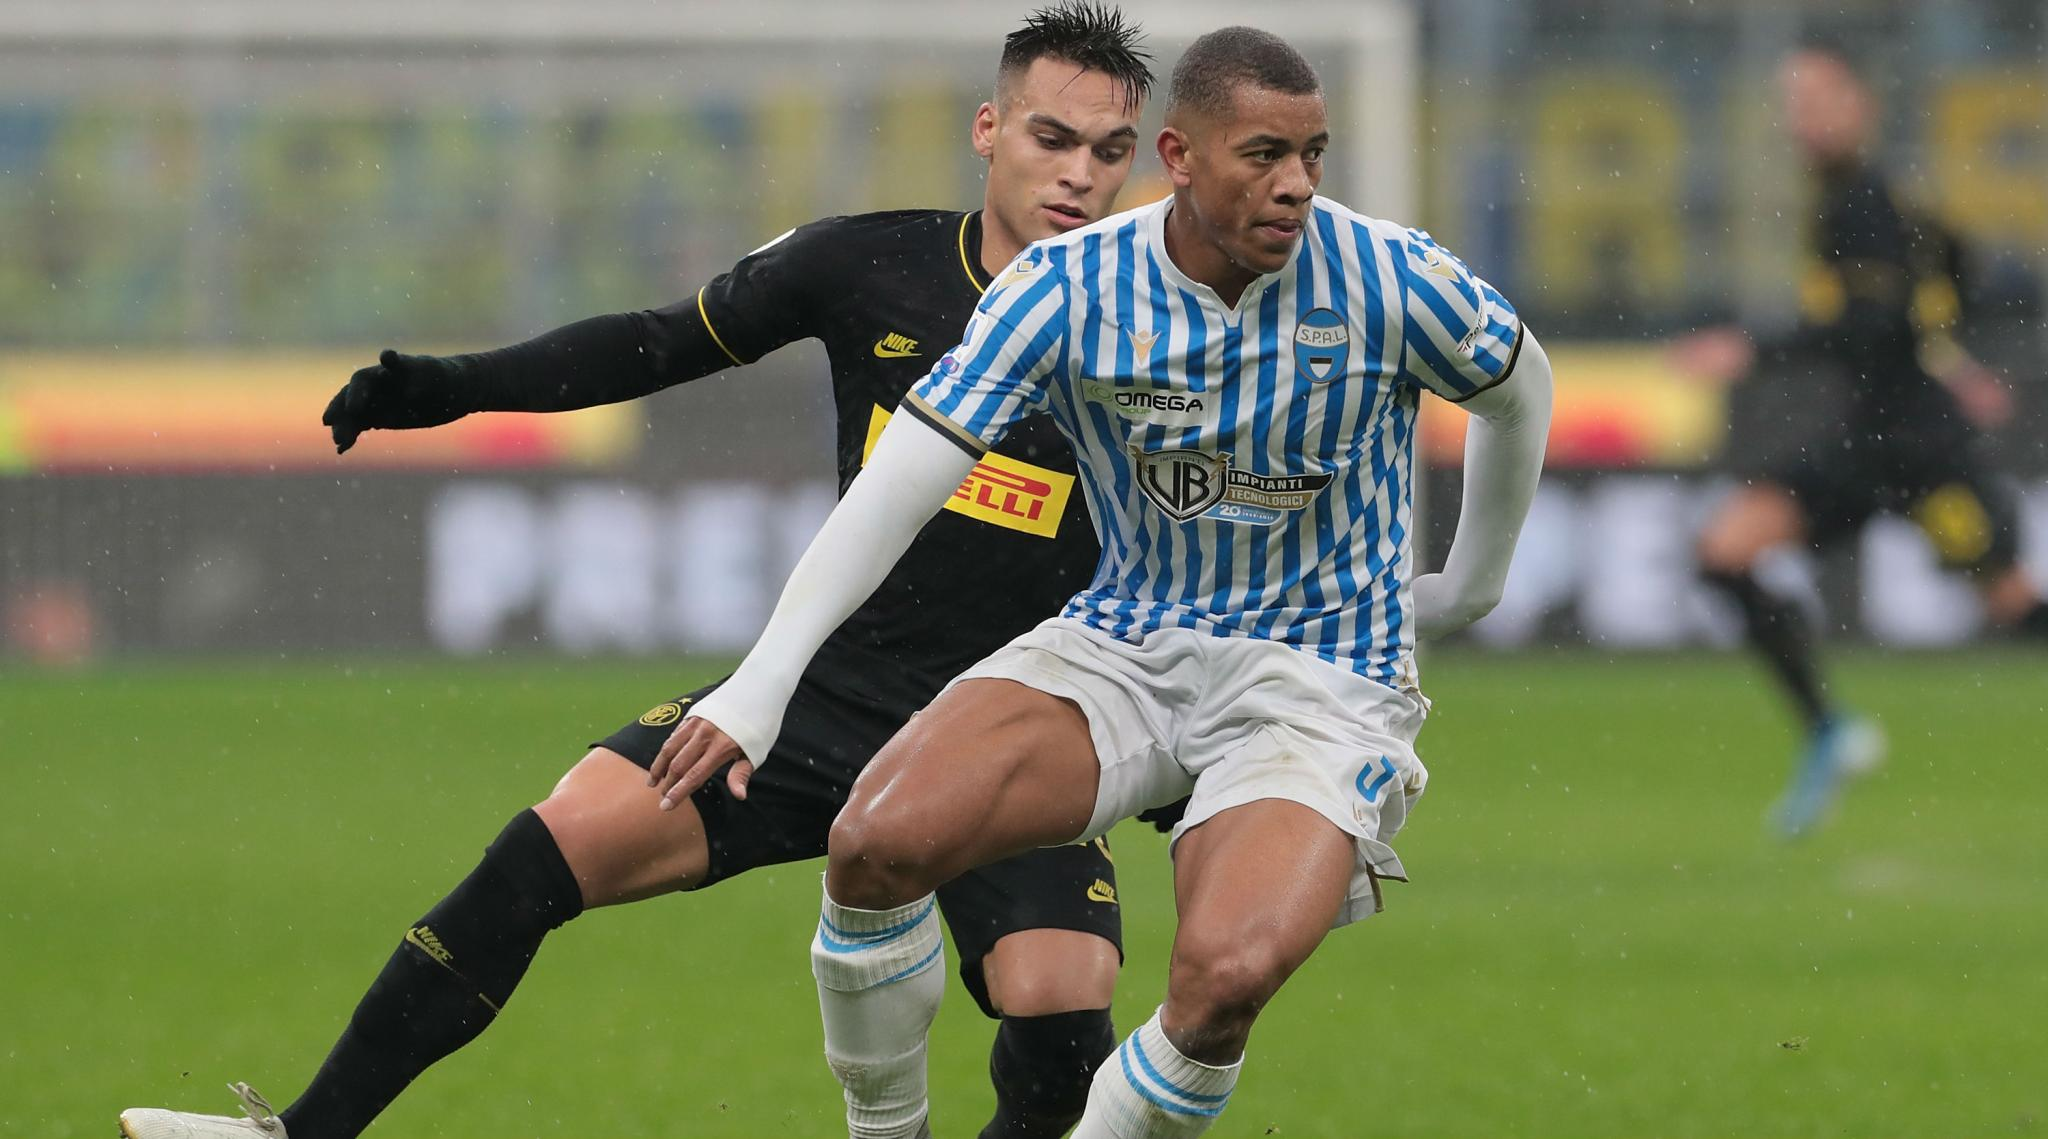 Inter Milan 2-1 SPAL, Serie A 2019-20 Result: Lautaro Martinez Double Fires Internazionale 1-Point Clear of Juventus on Top